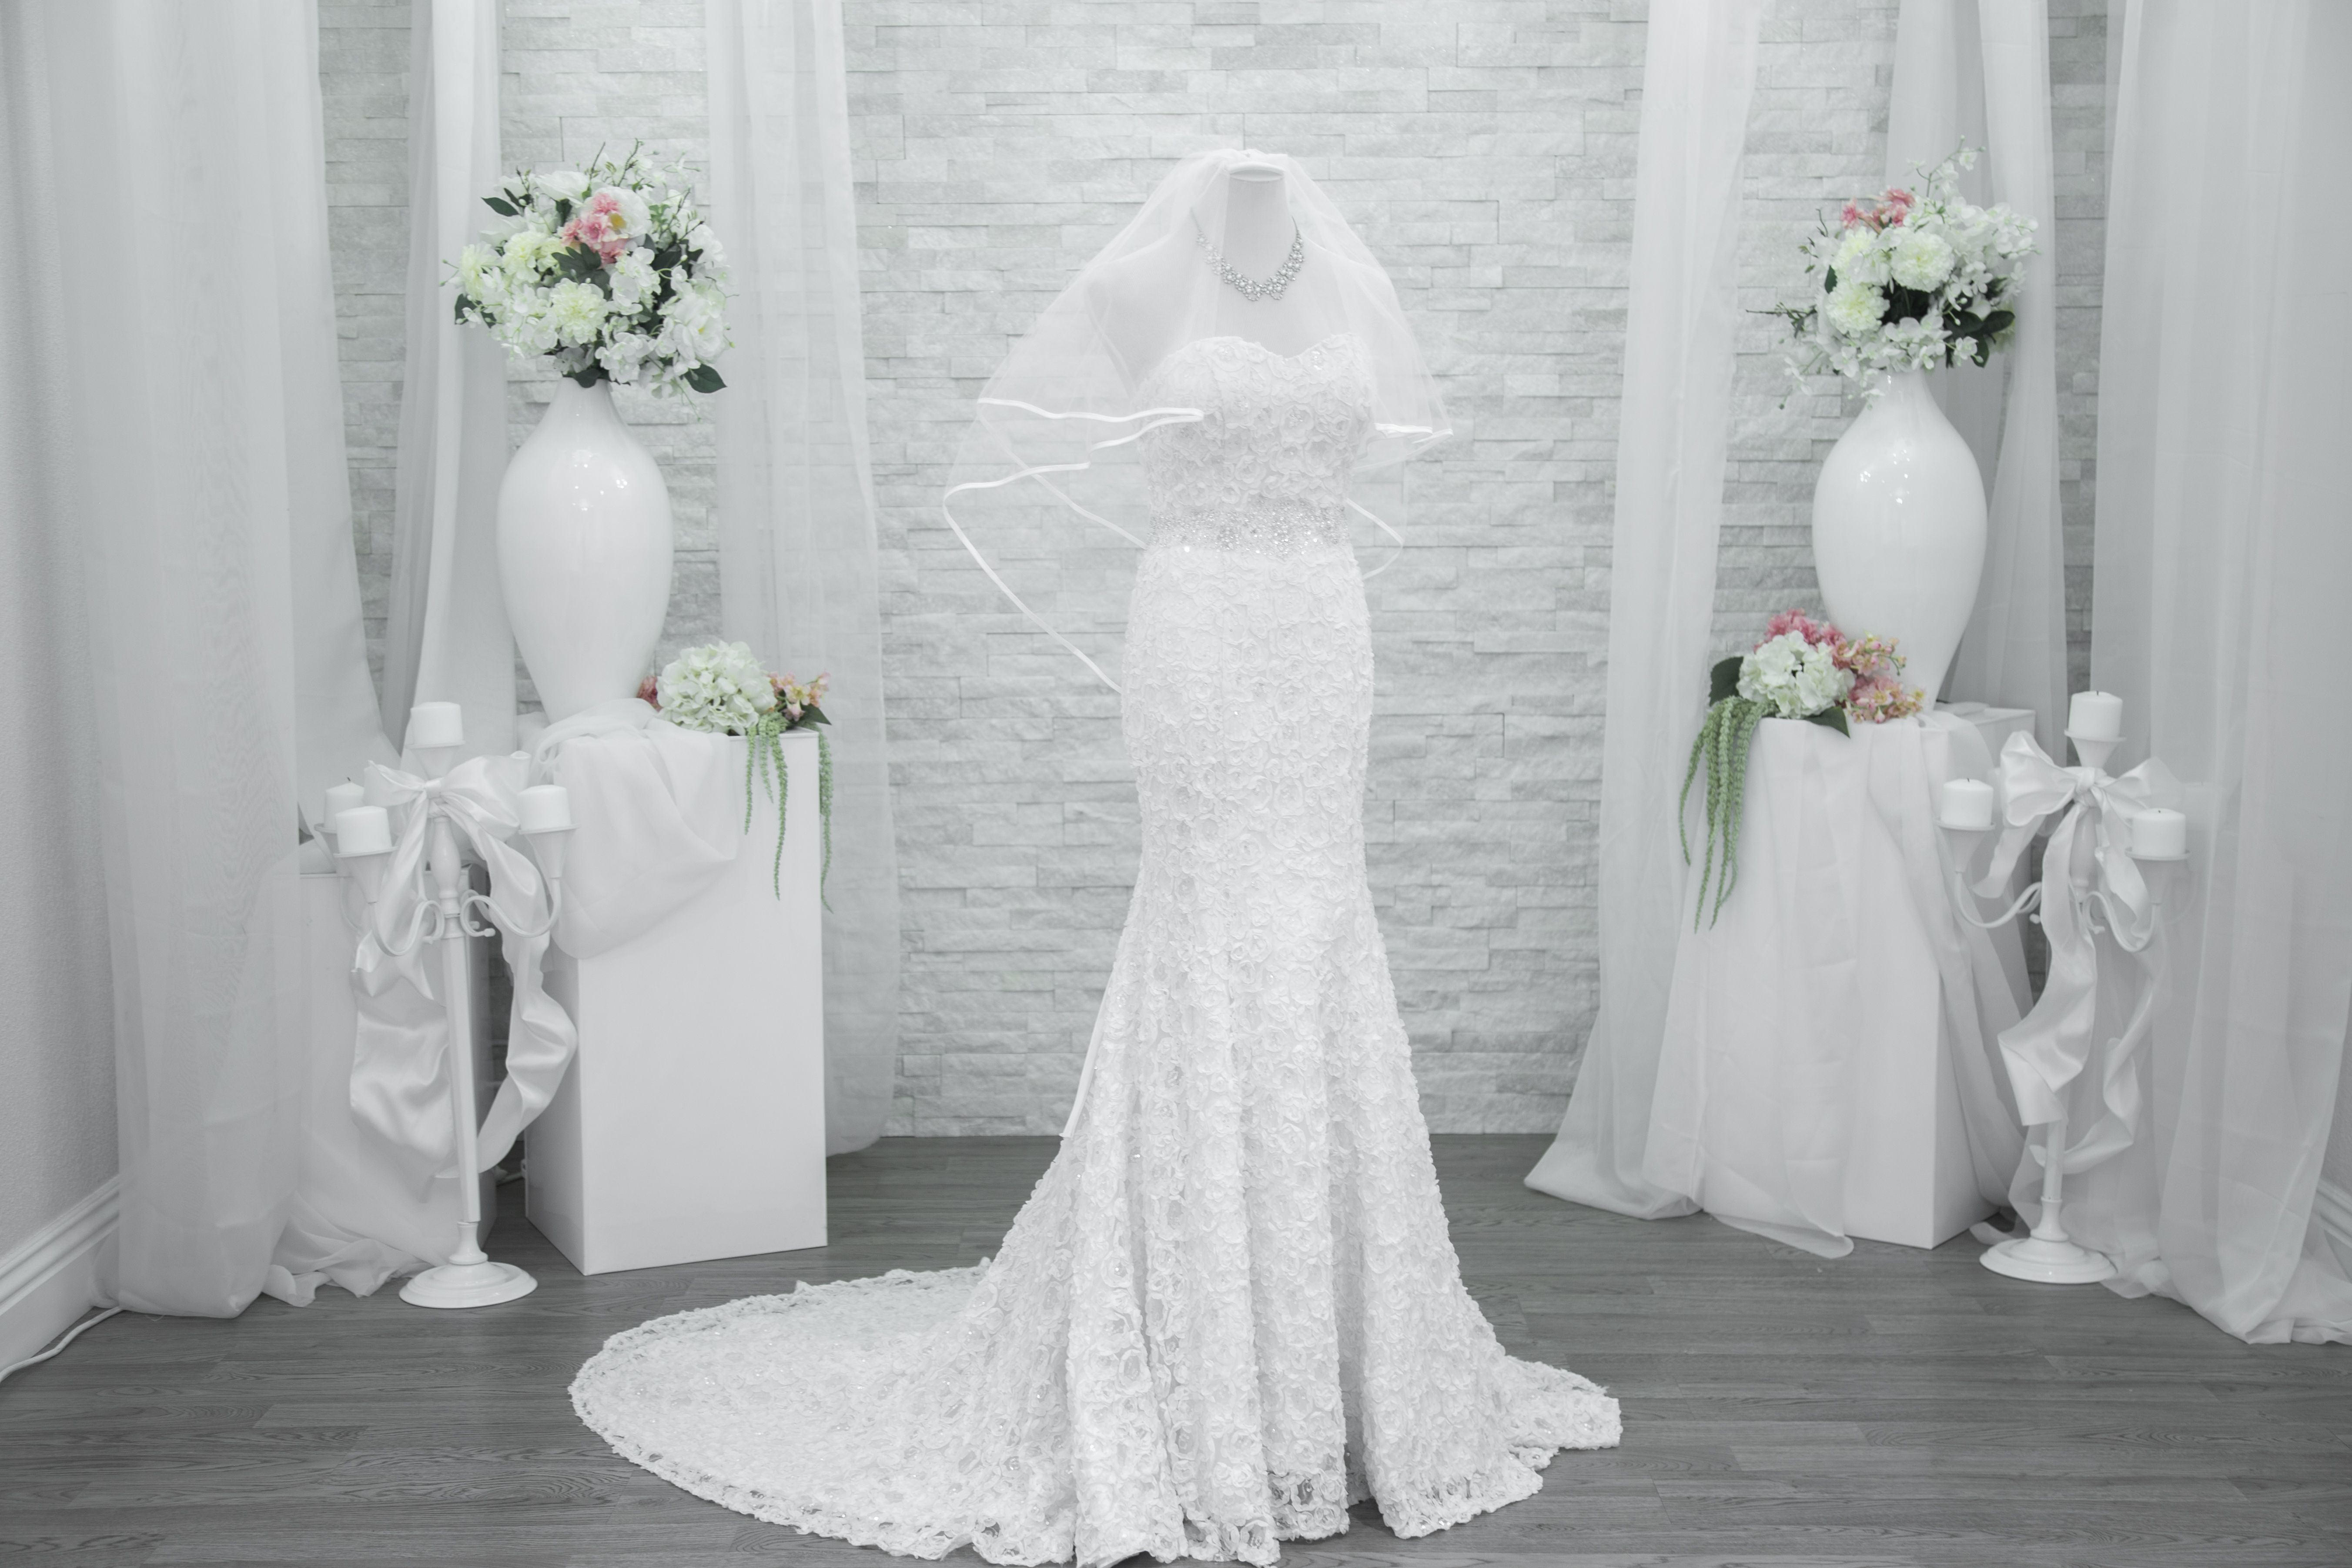 The Rachel 2 0 Available In All Sizes For Rent Special Ordering And Purchases Available As Well Also Wedding Gown Rental Vegas Wedding Dress Rent Wedding Gown